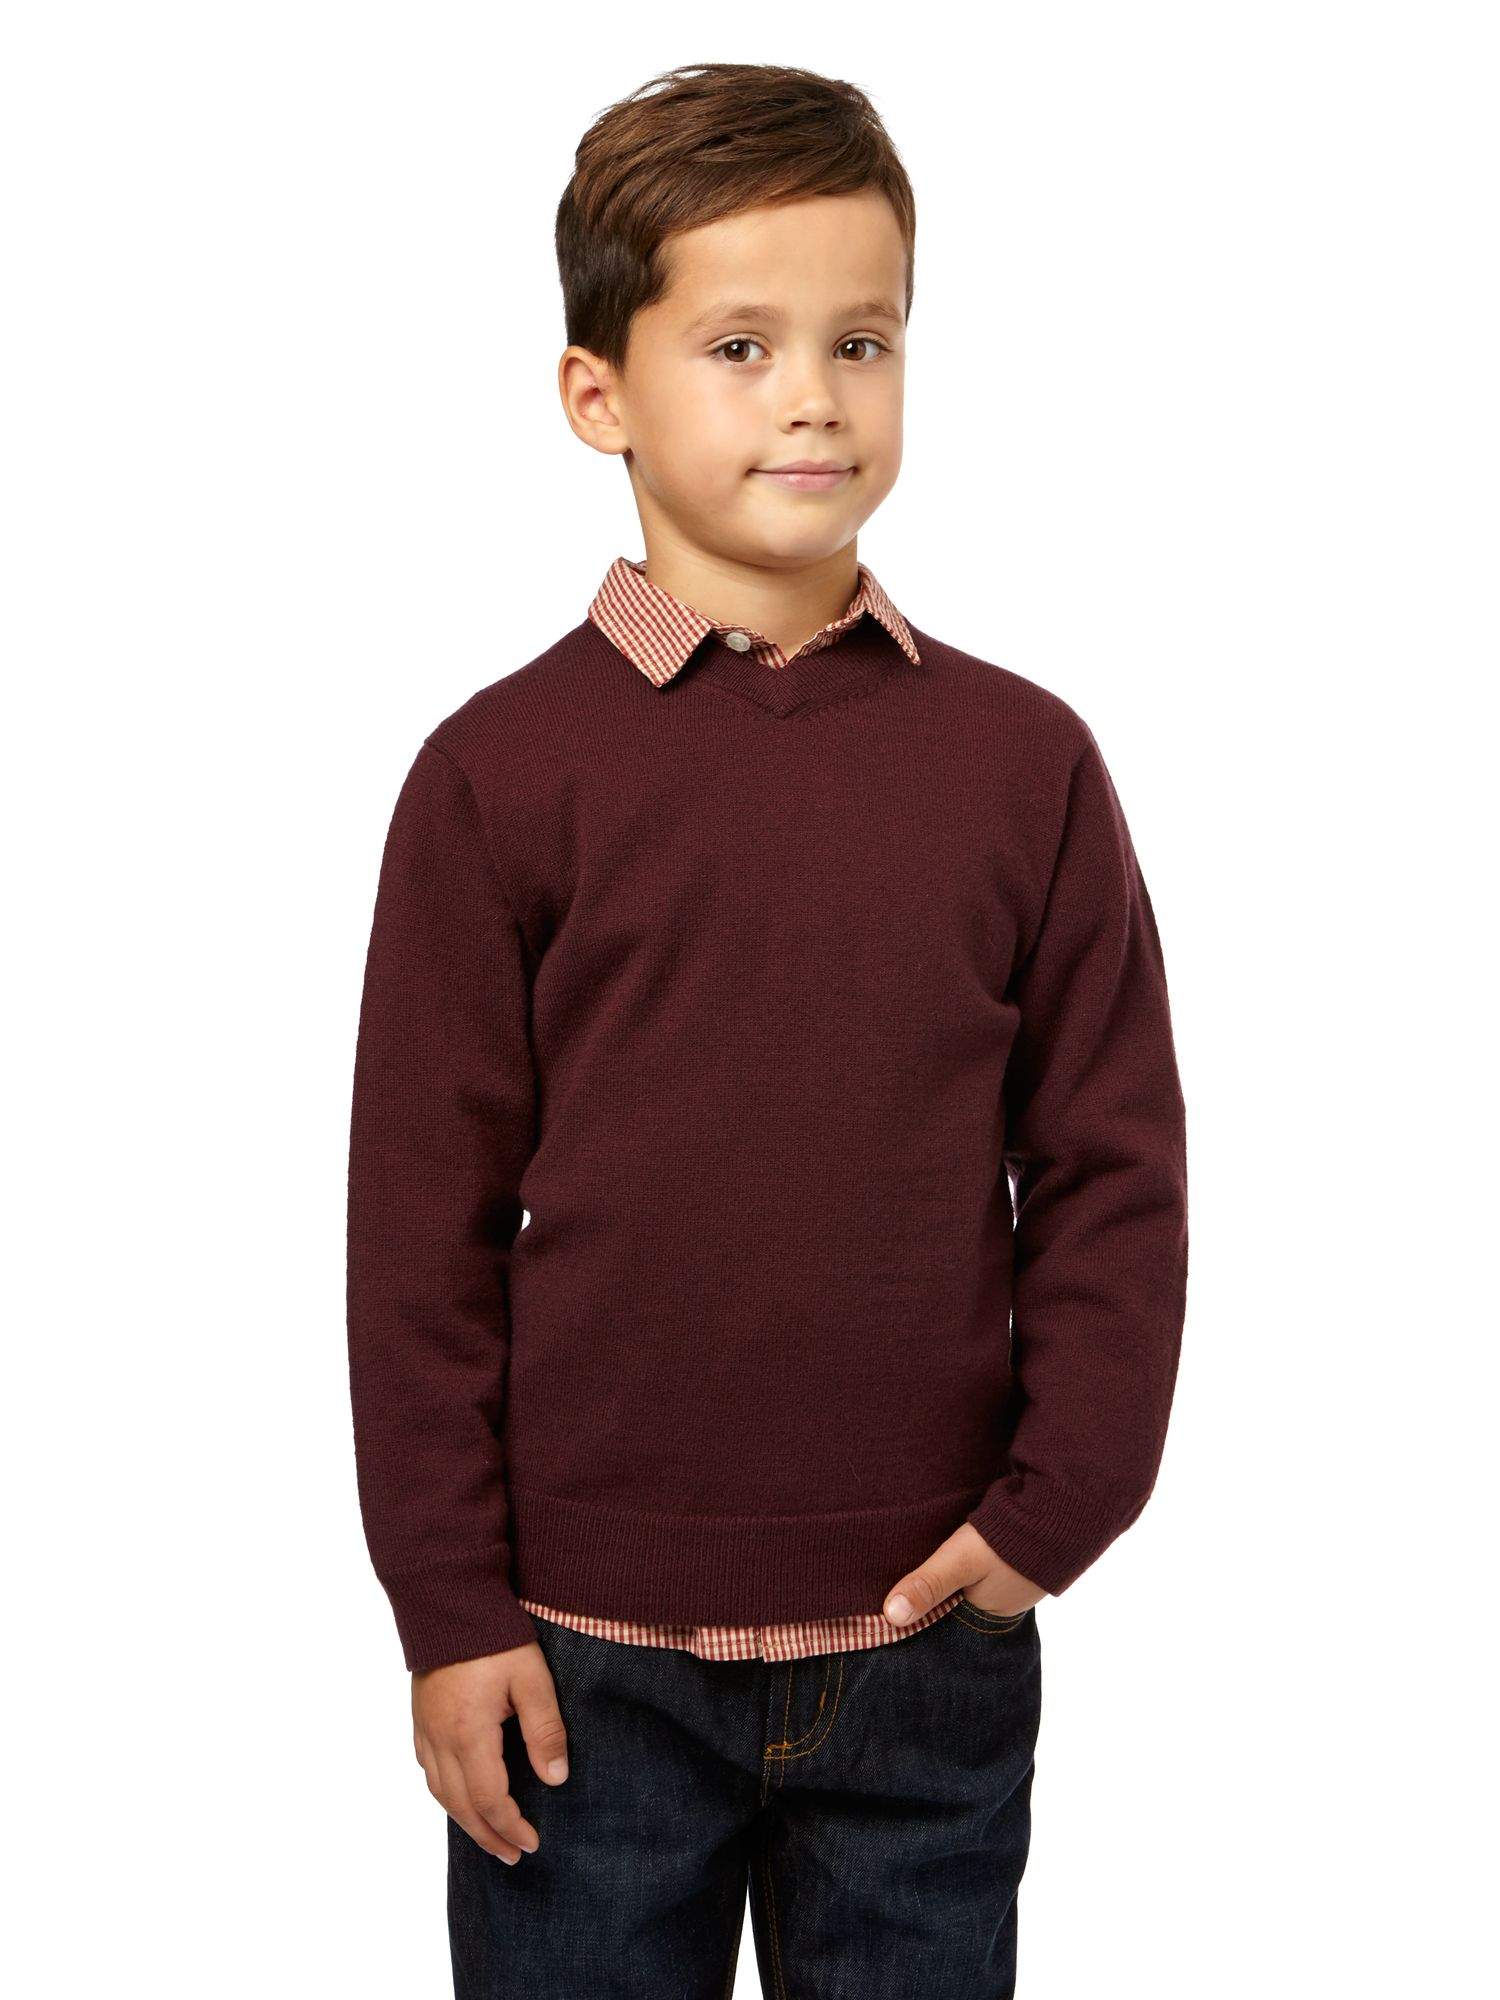 Boys lambswool v neck jumper